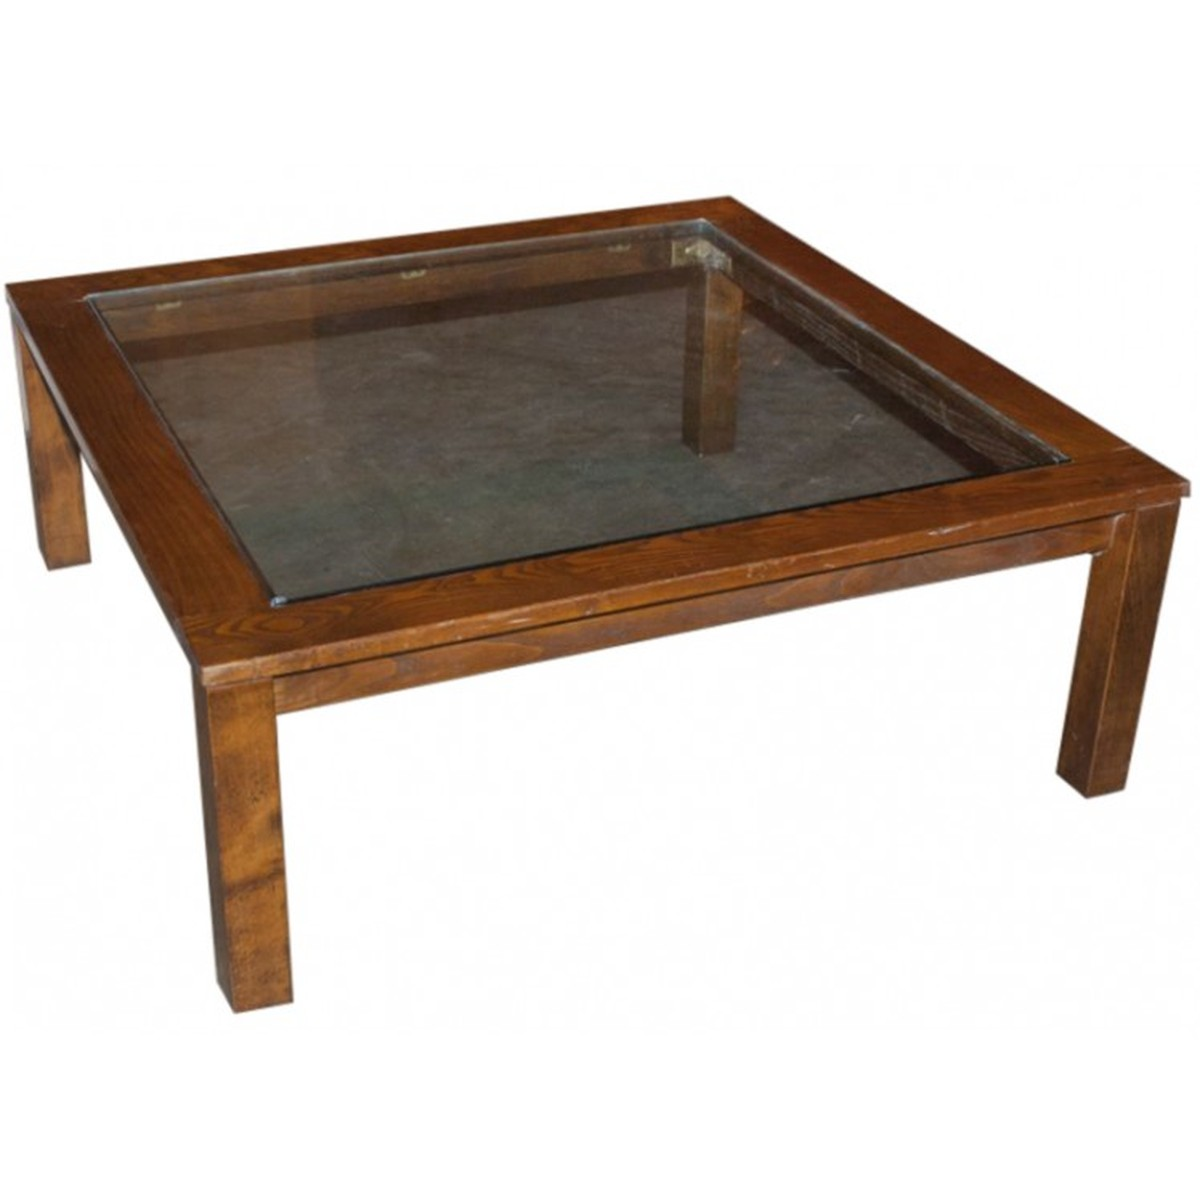 - Secondhand Chairs And Tables Coffee Tables Large Square Glass